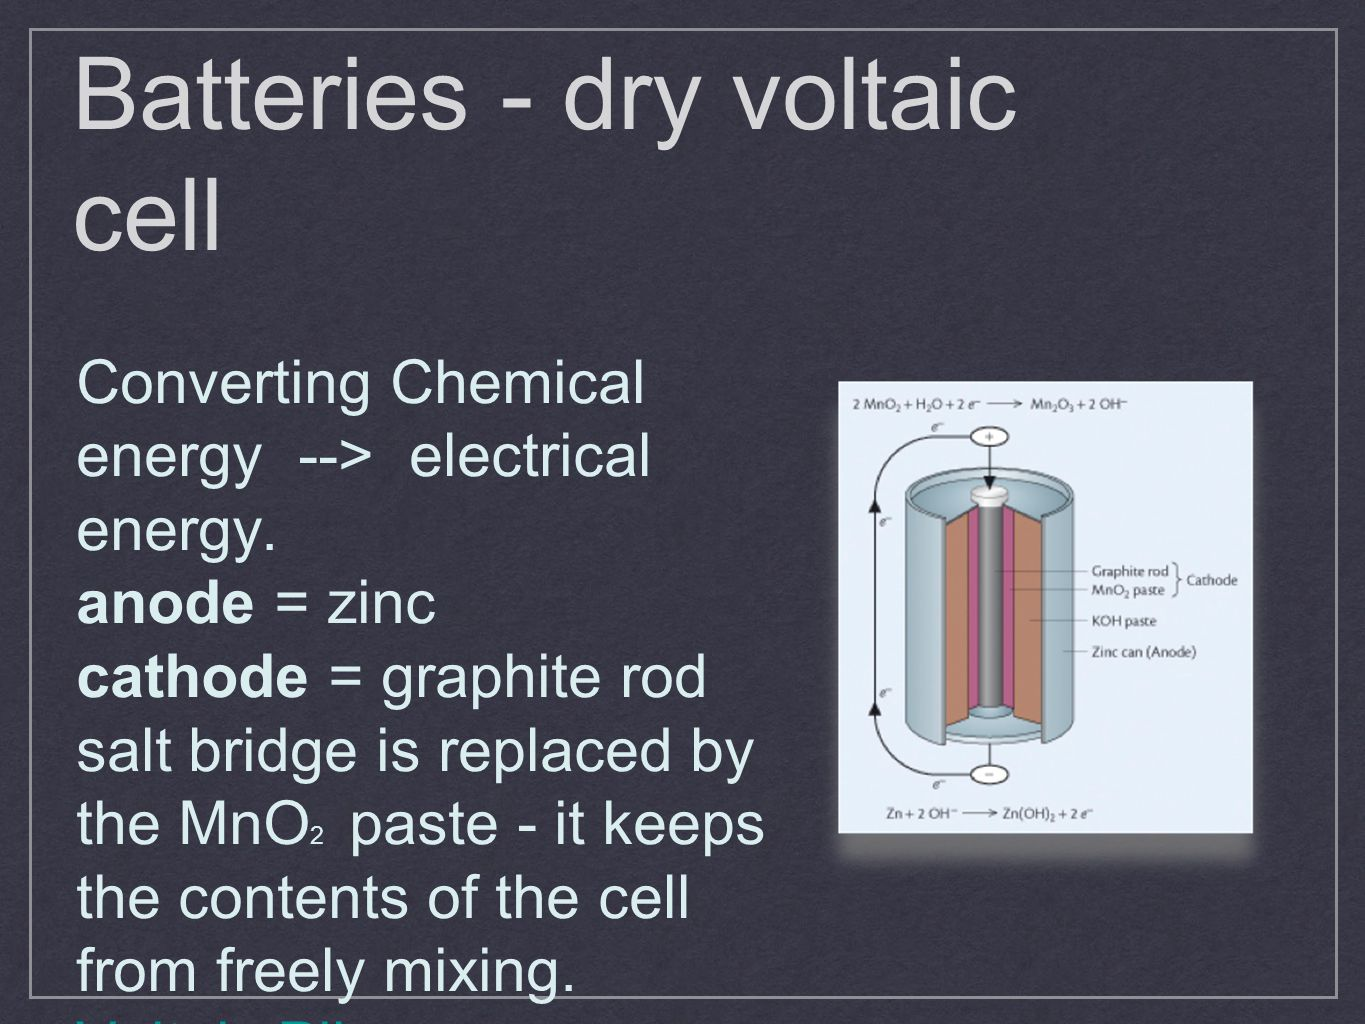 Batteries - dry voltaic cell Converting Chemical energy --> electrical energy. anode = zinc cathode = graphite rod salt bridge is replaced by the MnO